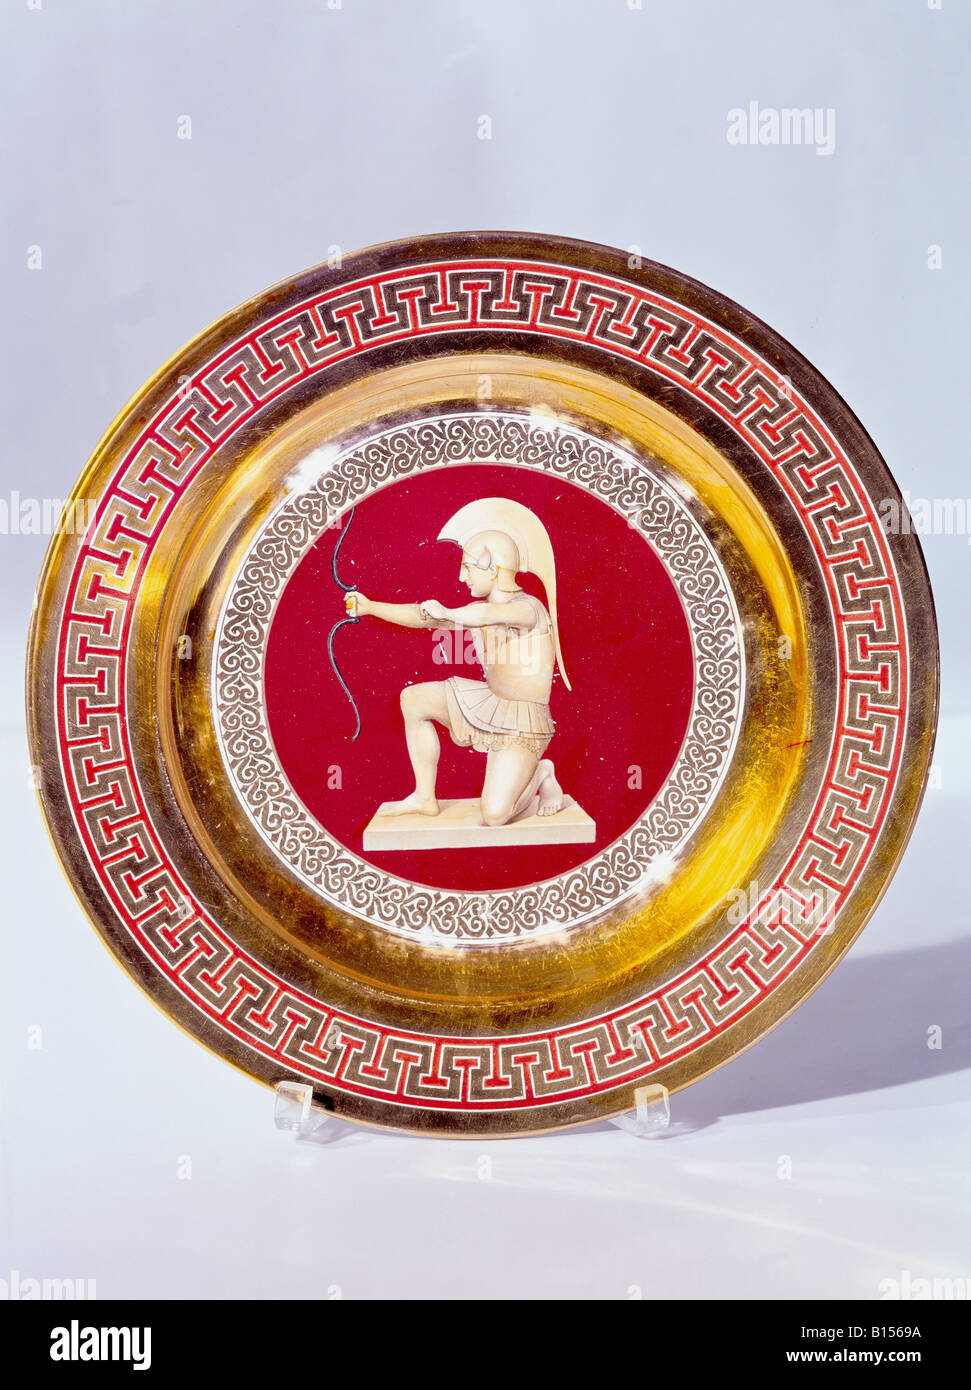 fine arts, porcelain, plate, series with gold plating, onyx series, archer, Nymphenburg Porcelain Manufactory, Germany, Stock Photo